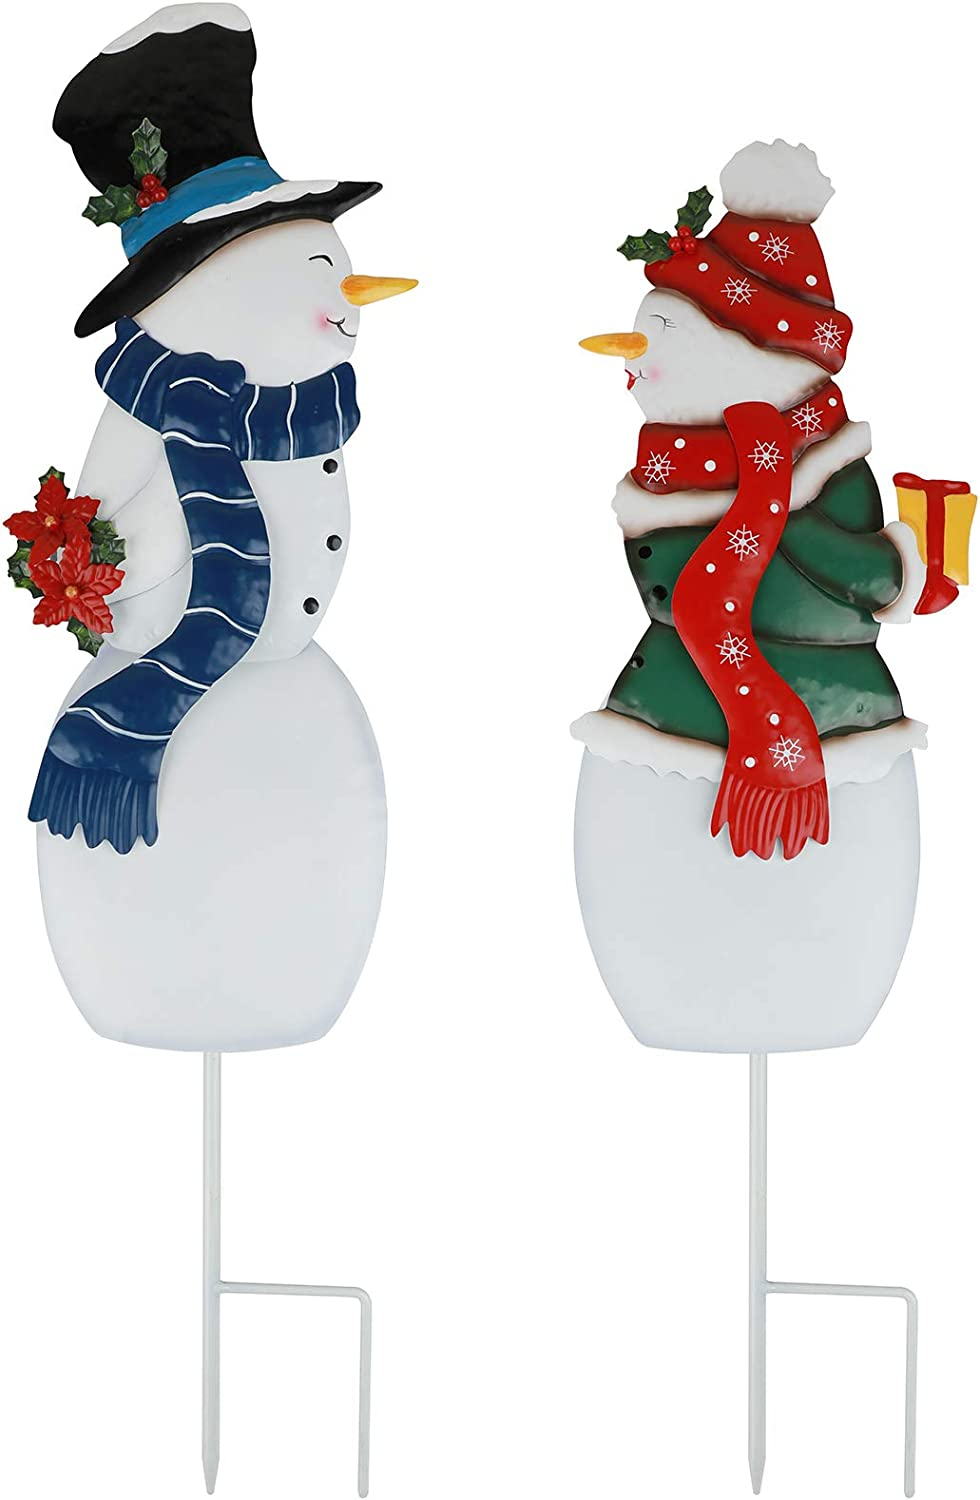 3D Metal Christmas Garden Stakes Set, Boy and Girl Snowman Stake for Outdoor Garden Yard Decorations